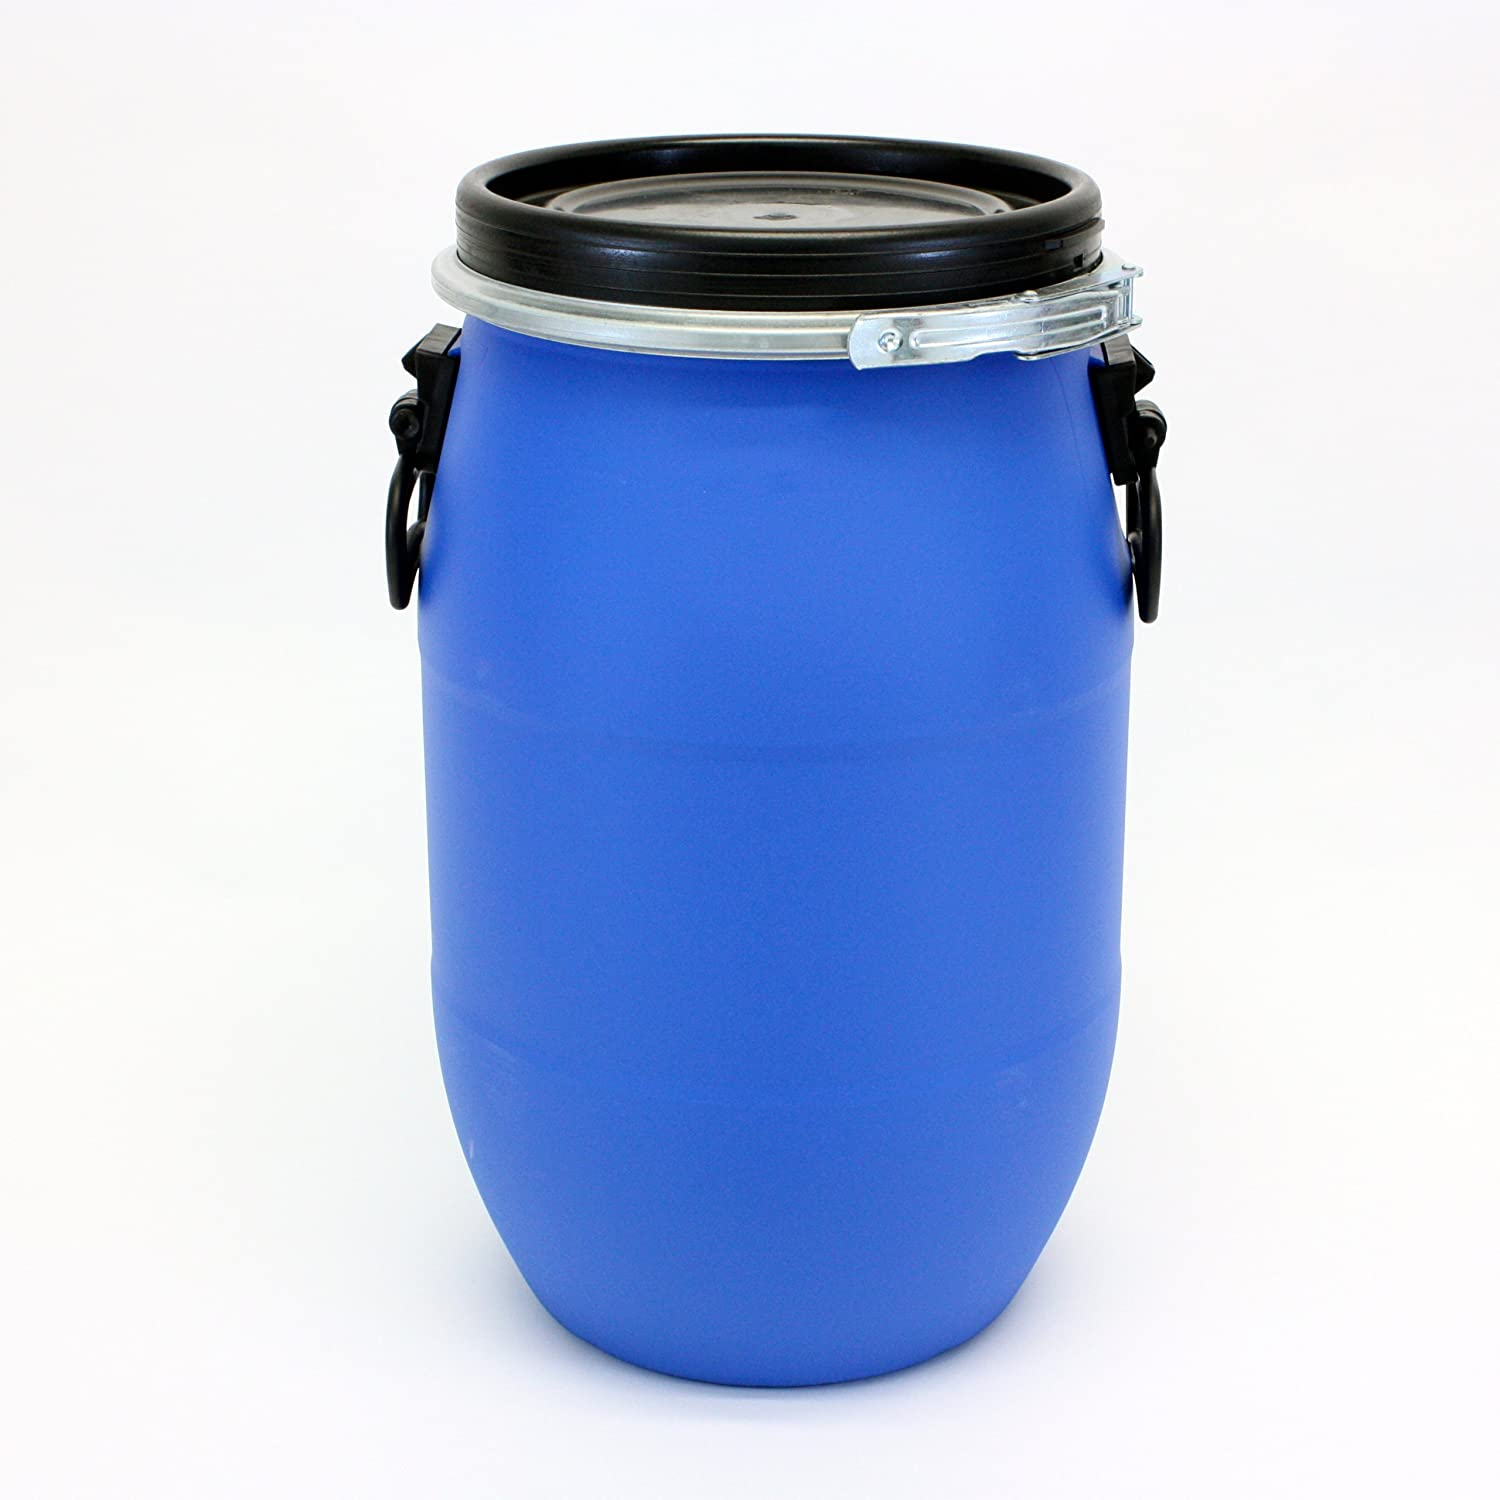 h32 airtight storage container 30 Litre